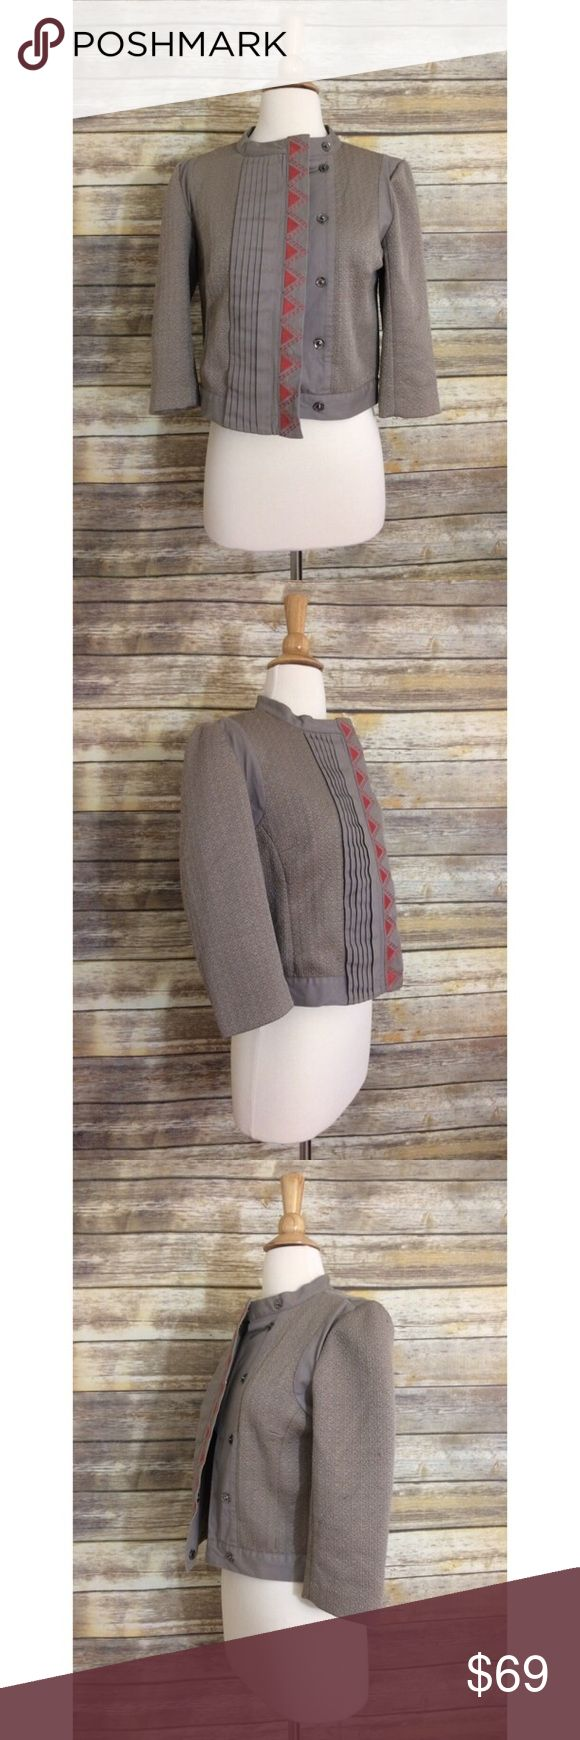 BCBGeneration Taupe Embroidered Triangle Jacket Cropped spring jacket from BCBGeneration with 3/4 sleeves in a taupe/light brown color. Fastens with buttons down the front and is detailed with pleats and coral colored embroidery. The tag size is Medium but it fits more like a Small. There may be a few loose strings here and there but is otherwise in very good condition. Please comment with questions or requests for measurements :) BCBGeneration Jackets & Coats